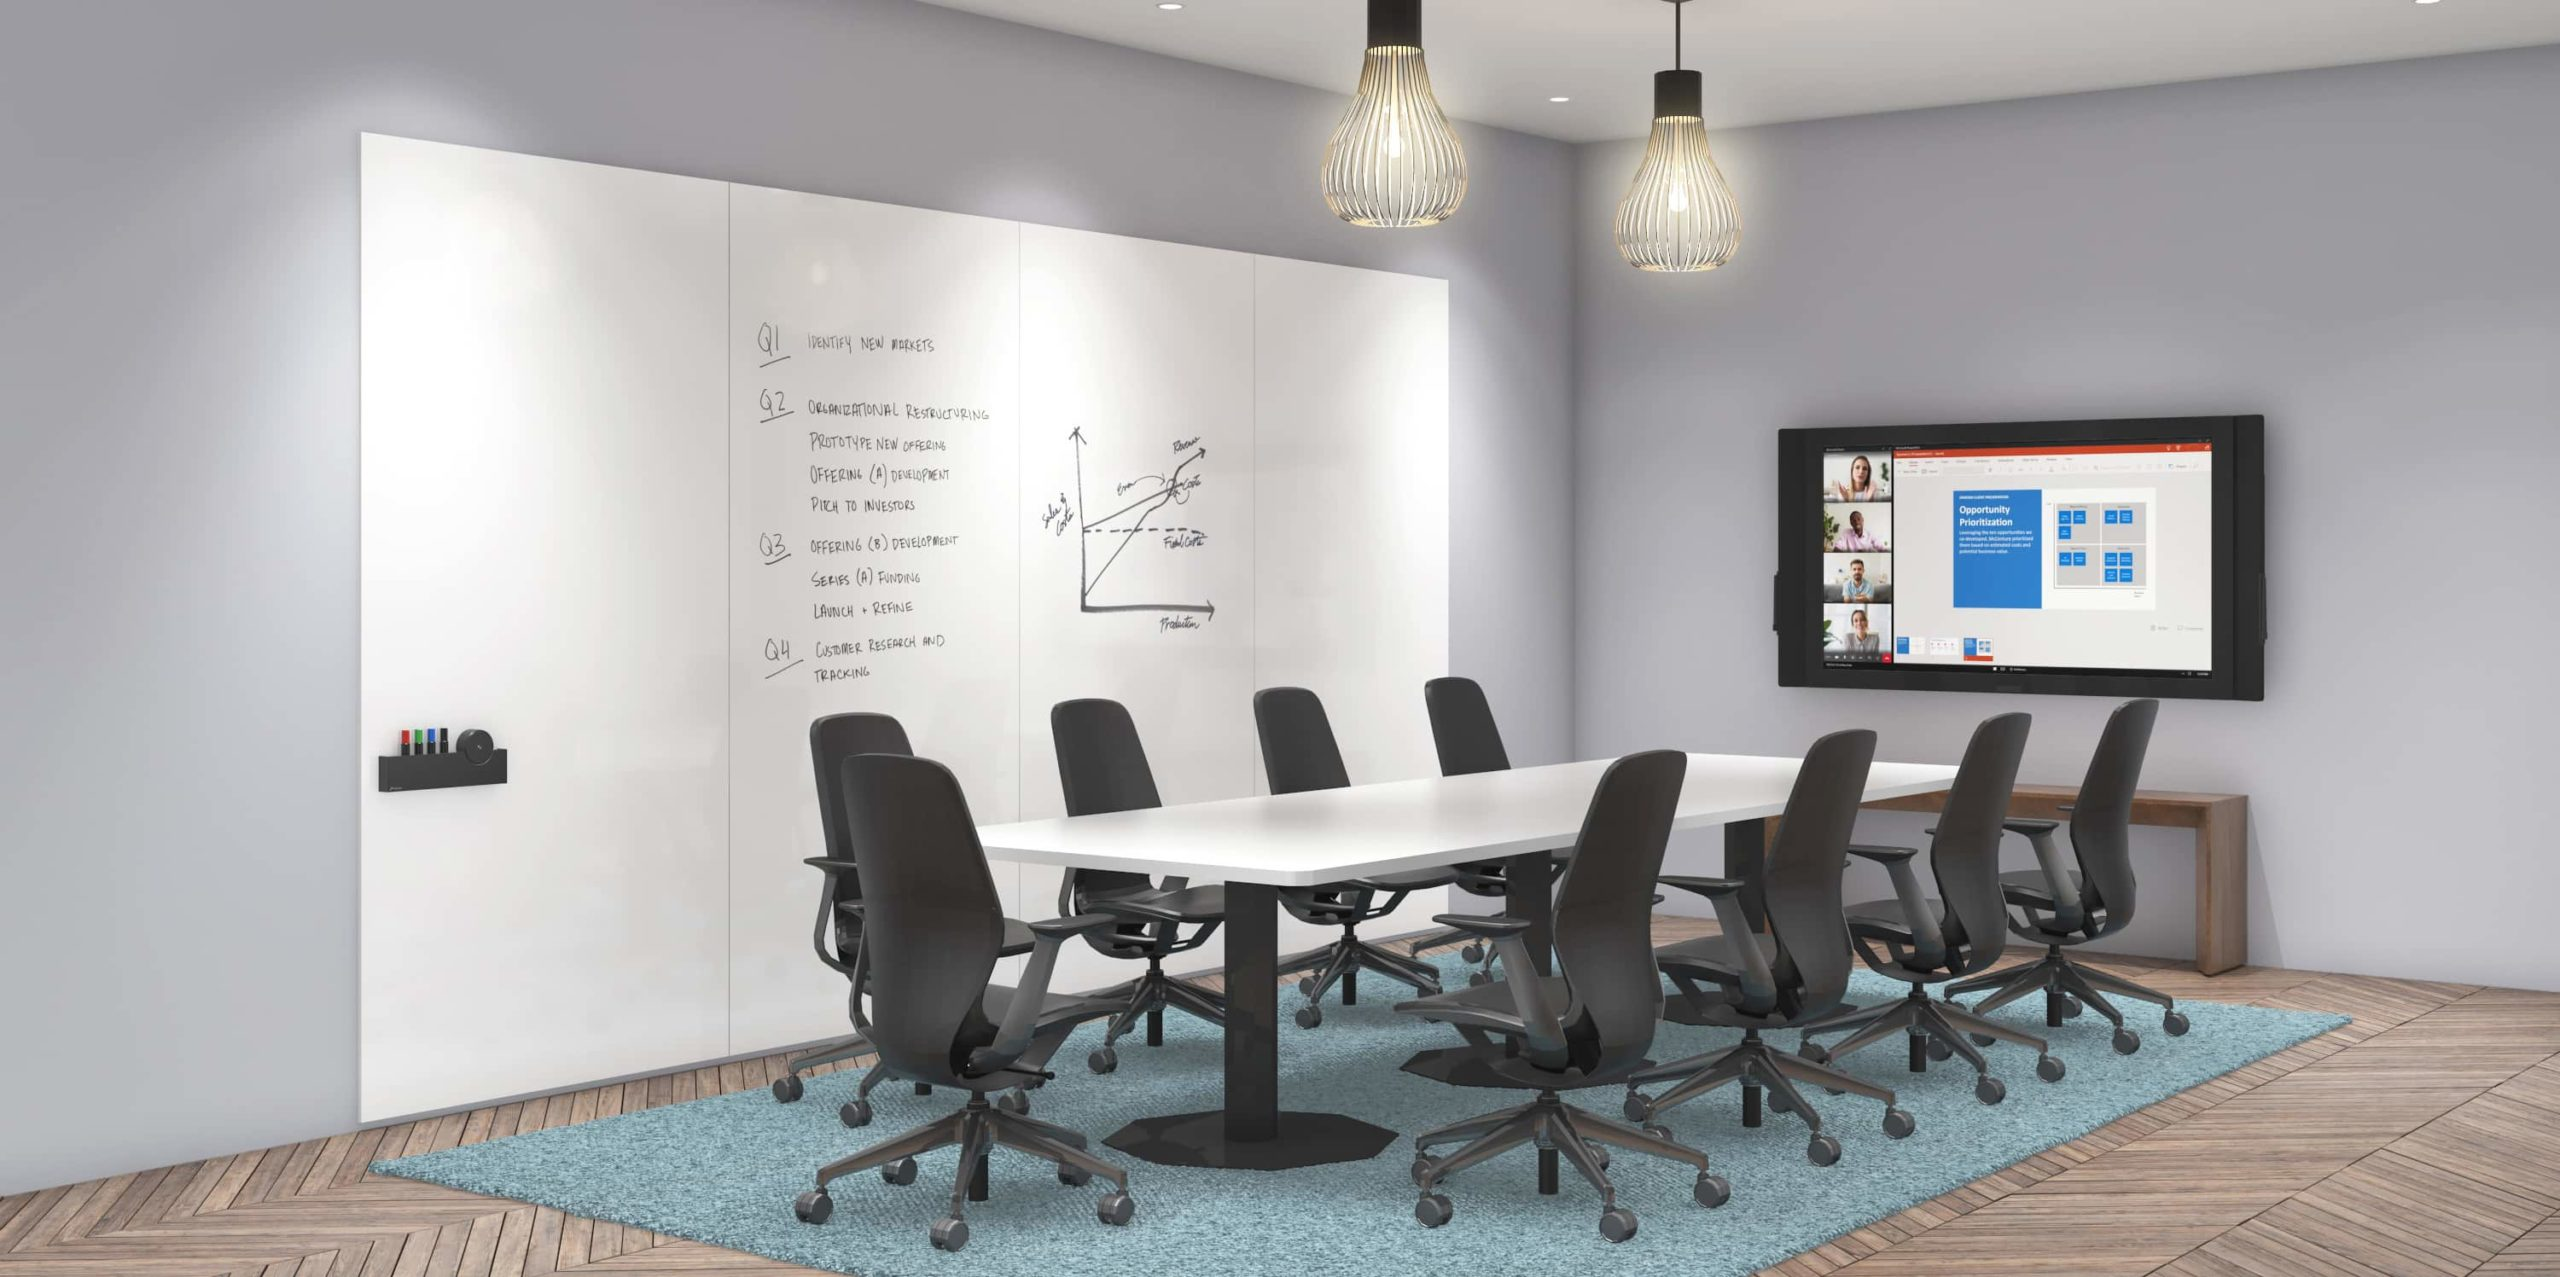 Meeting area with a long white table and black high-back chairs in front of a wall-mounted frameless whiteboard